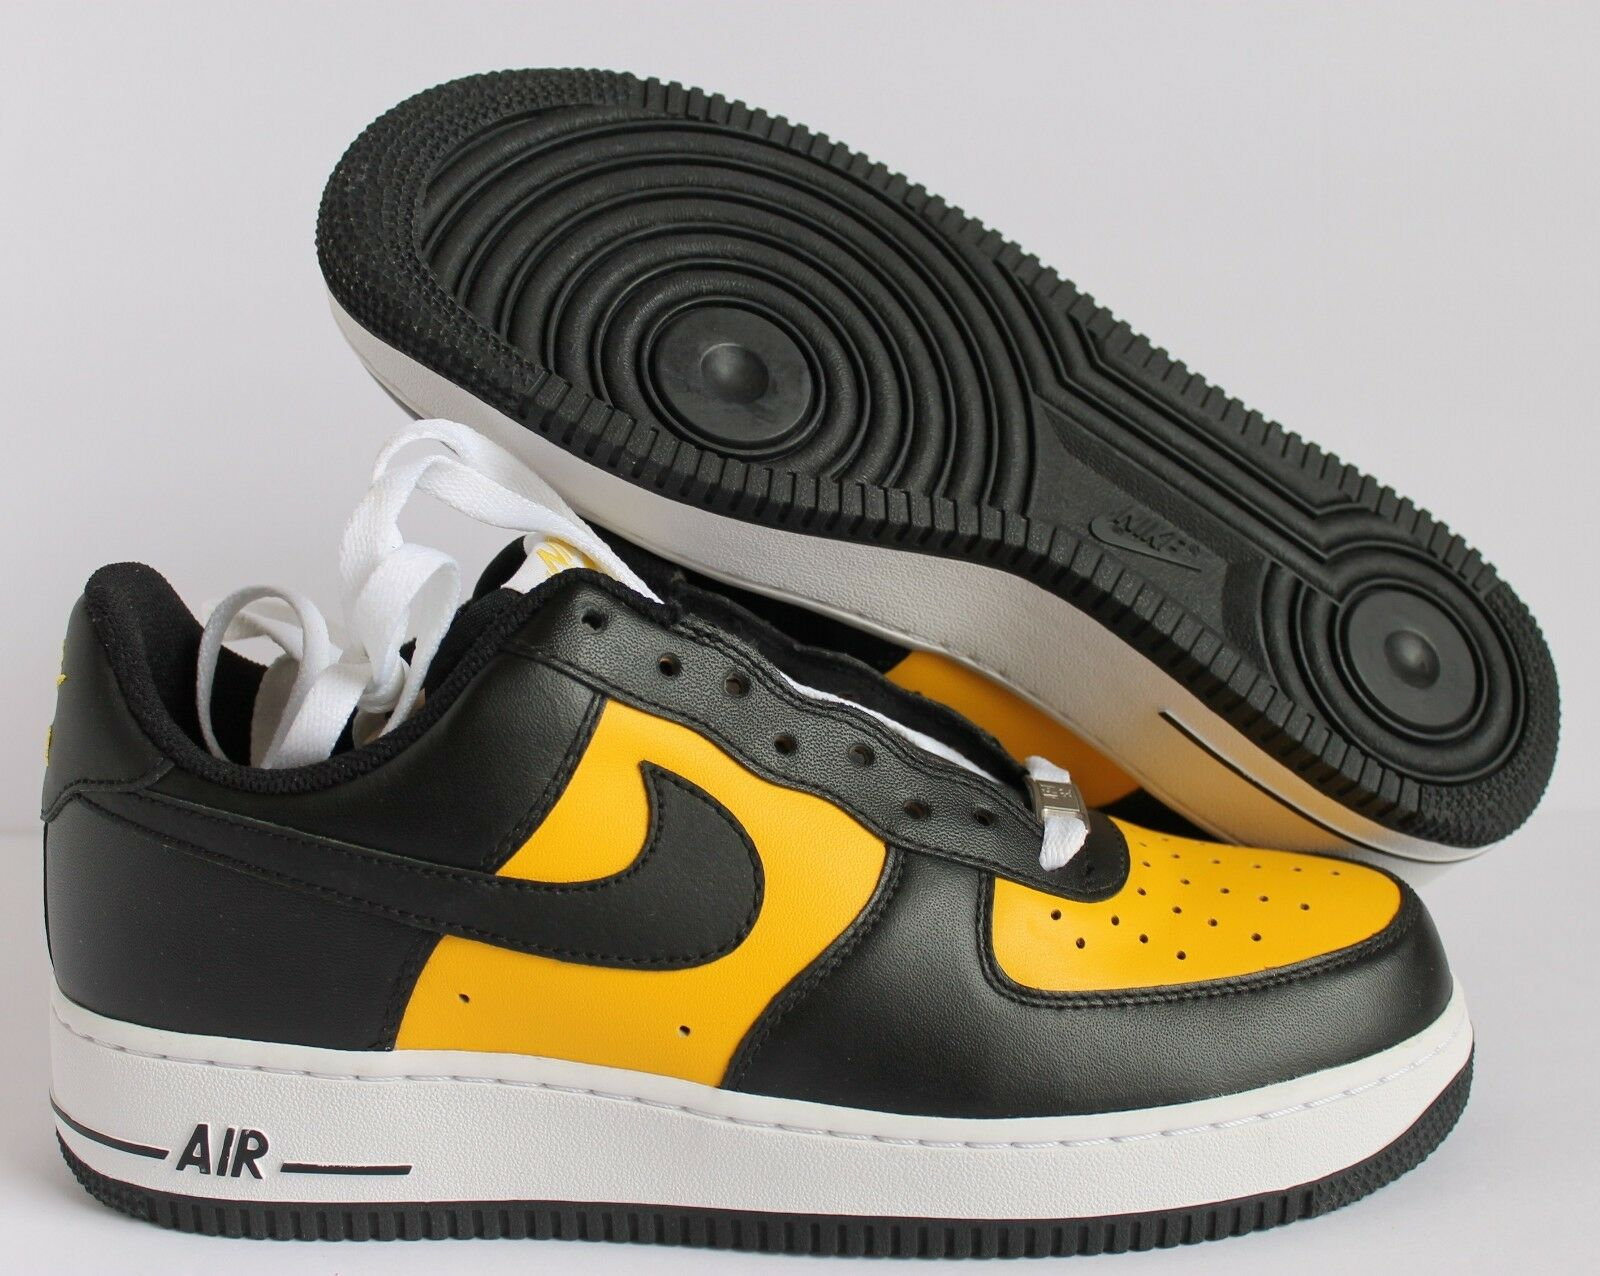 NIKE MEN AIR FORCE 1 07 VARSITY MAIZE-BLACK-WHITE RARE!!! Price reduction Great discount